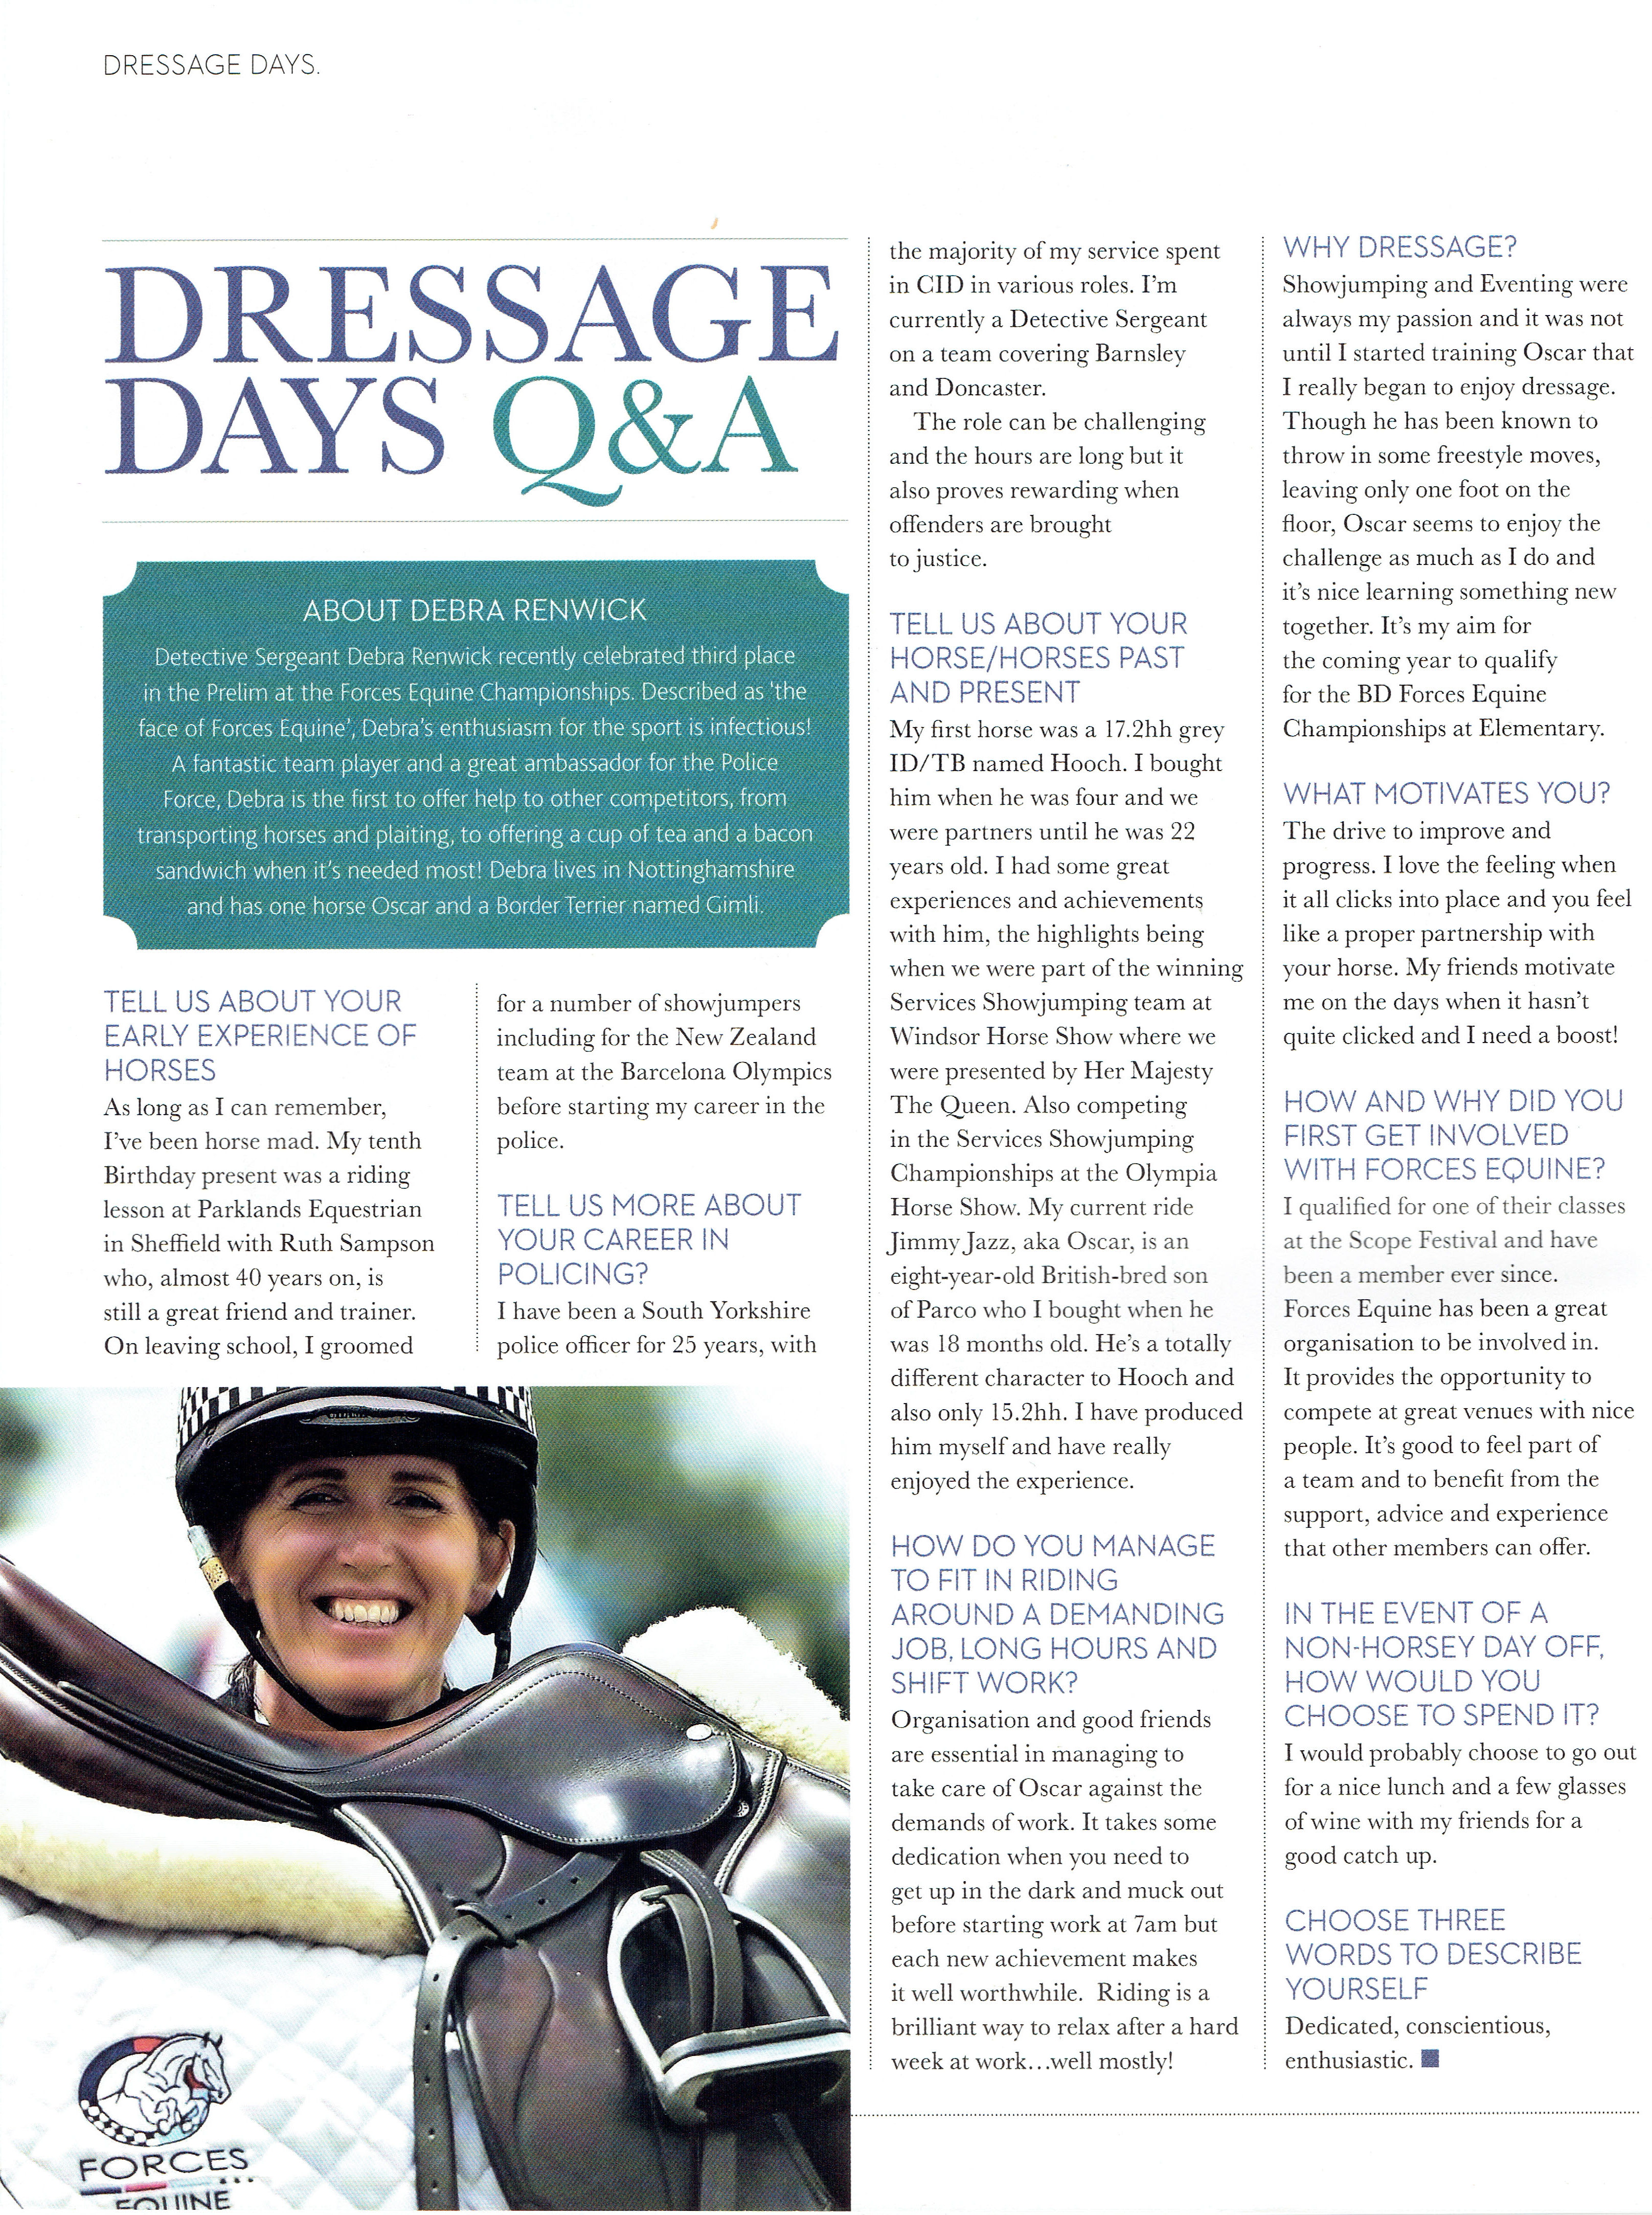 Fantastic write up in British Dressage magazine on our very own DS